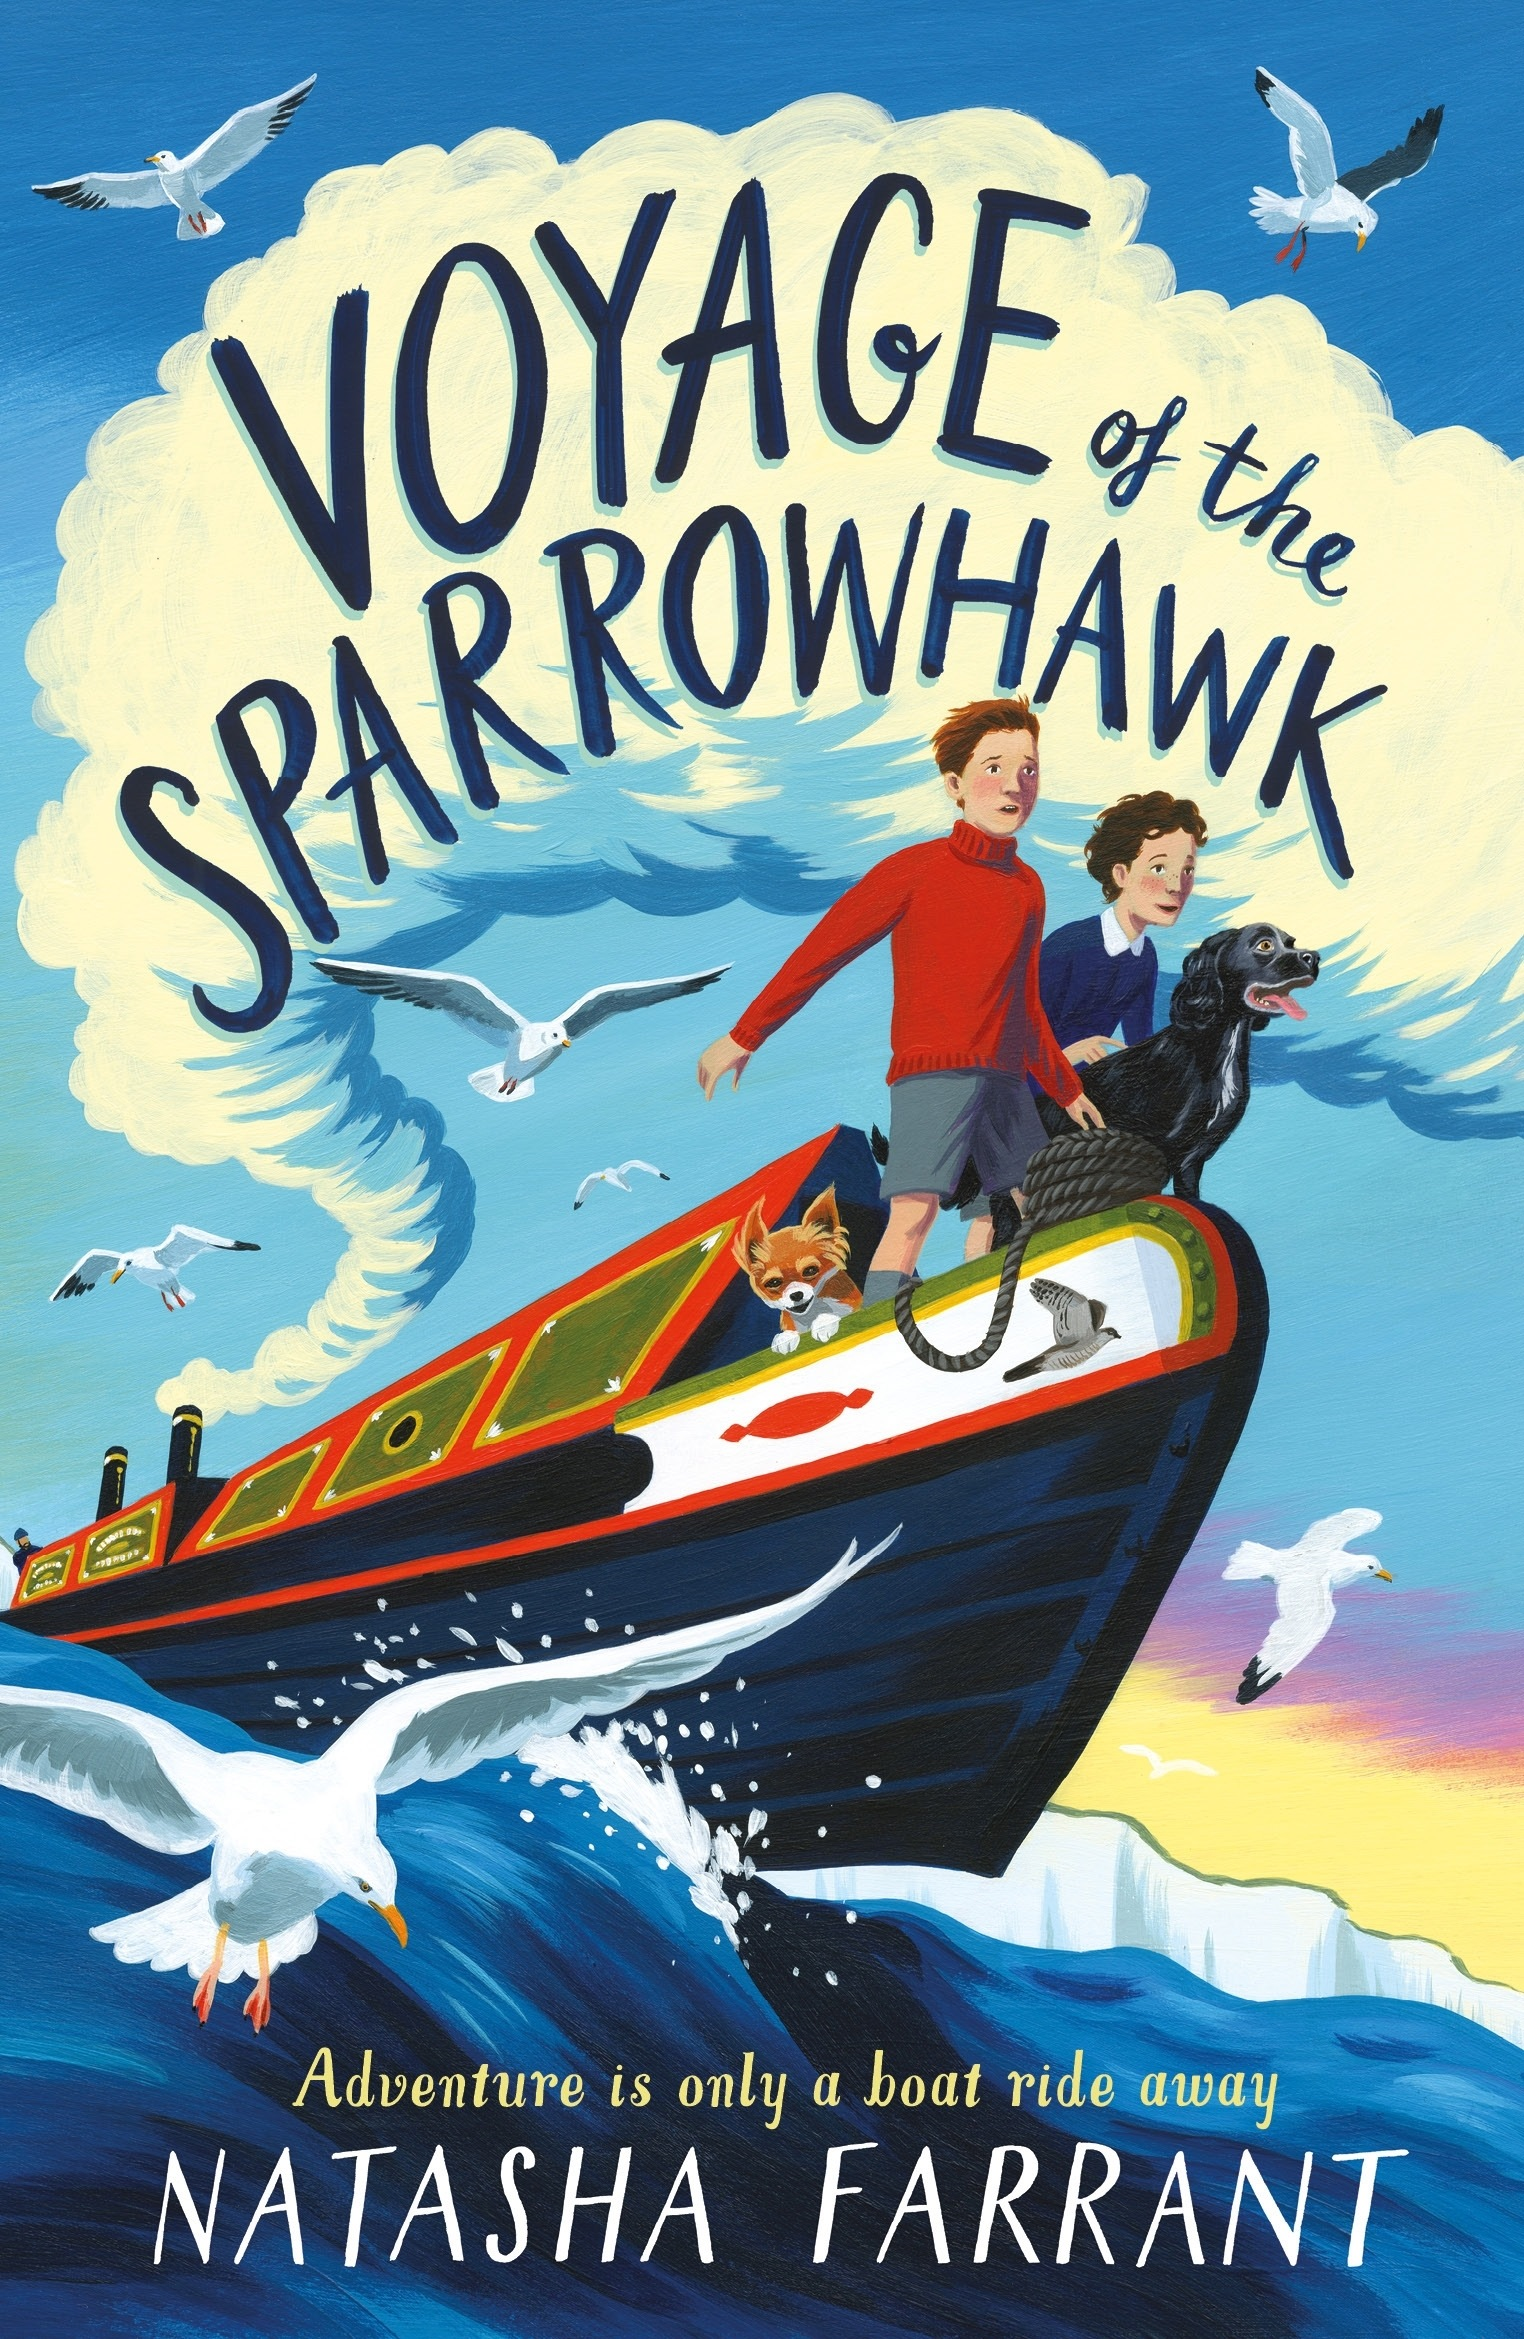 VOYAGE OF THE SPARROWHAWK image